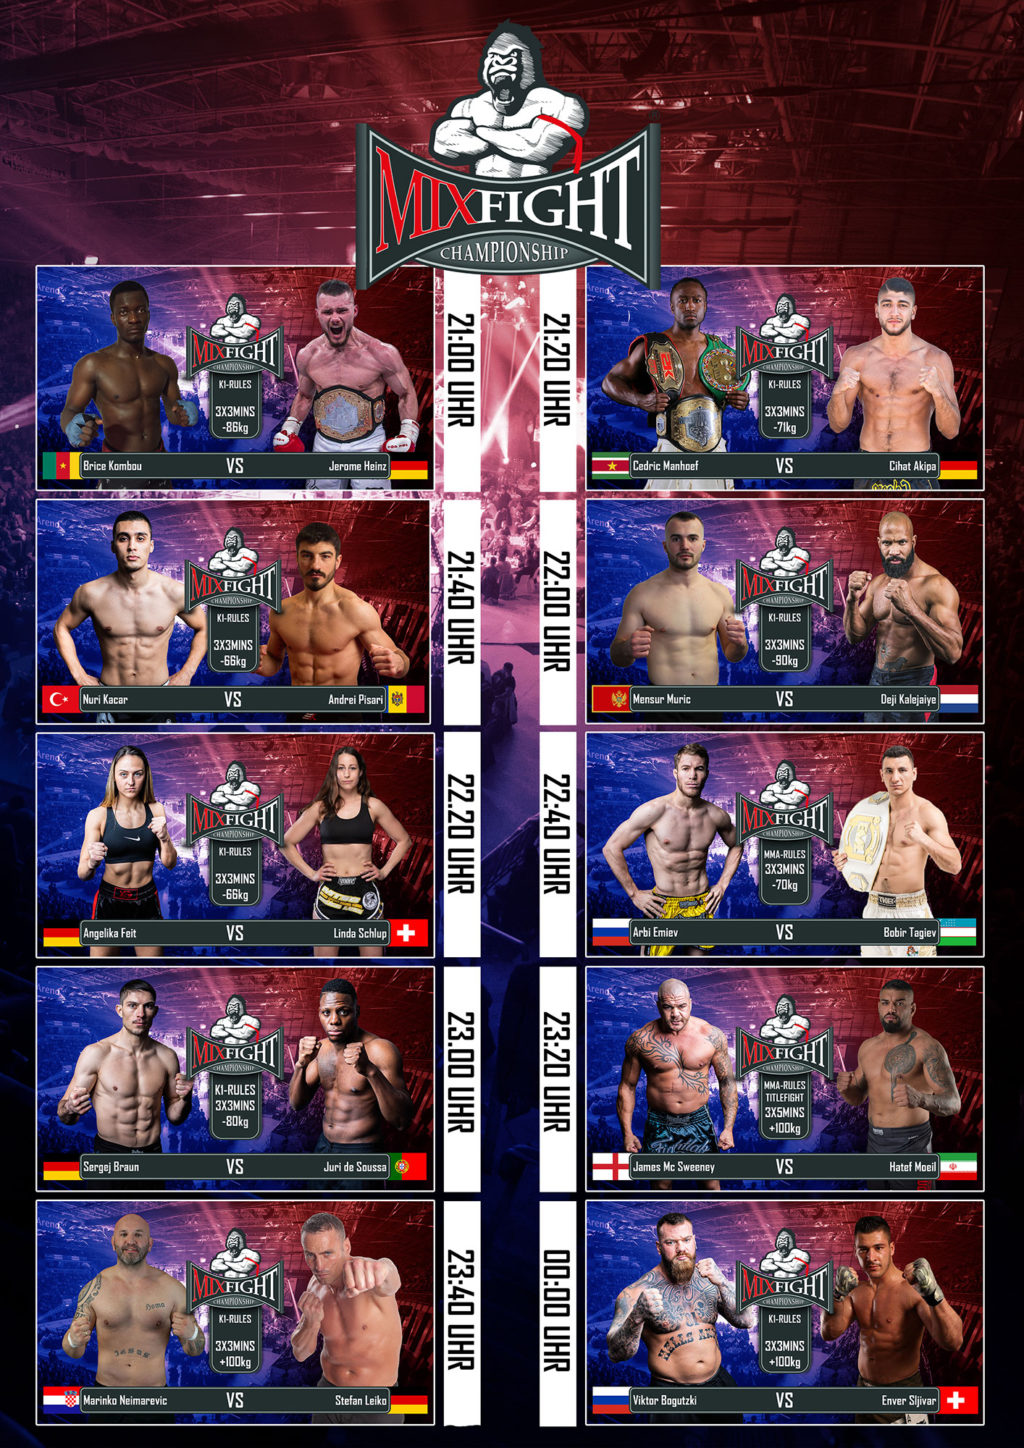 Mix fight Kassel fight card 1024x1448 - MIX FIGHT CHAMPIONCHIP 2019- 45 Euro gute Reihe